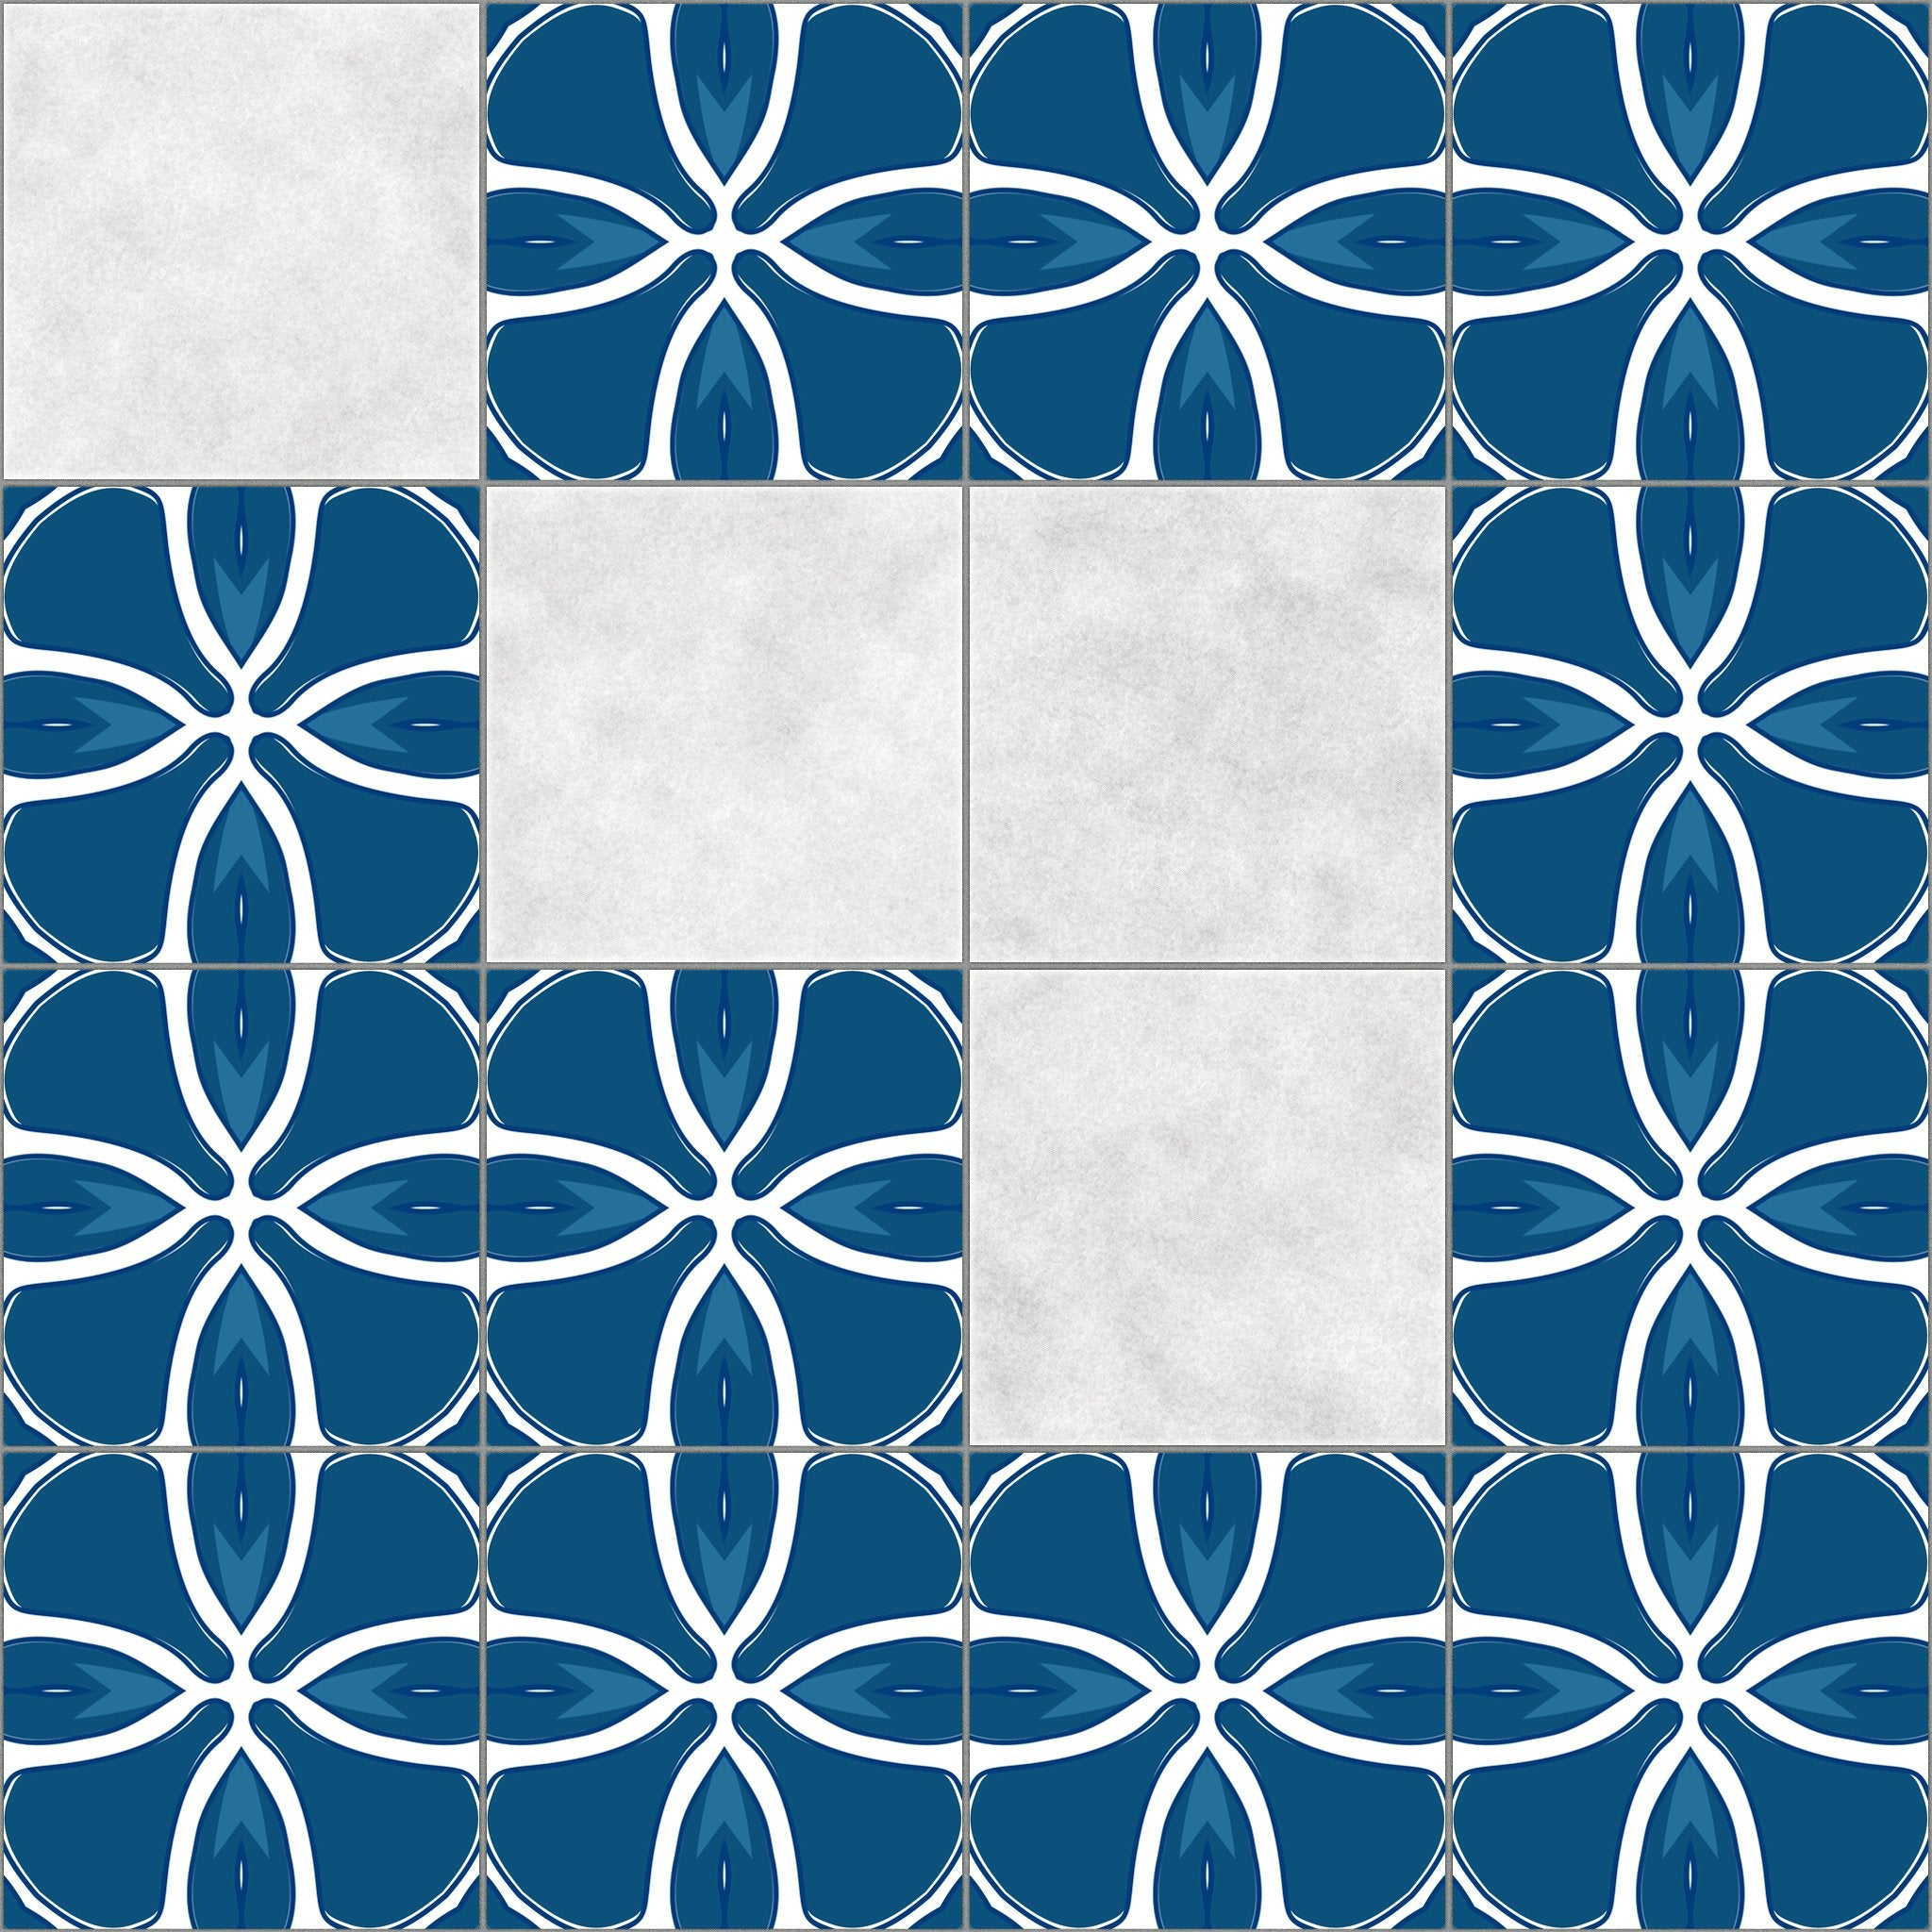 Tile stickers - KP112